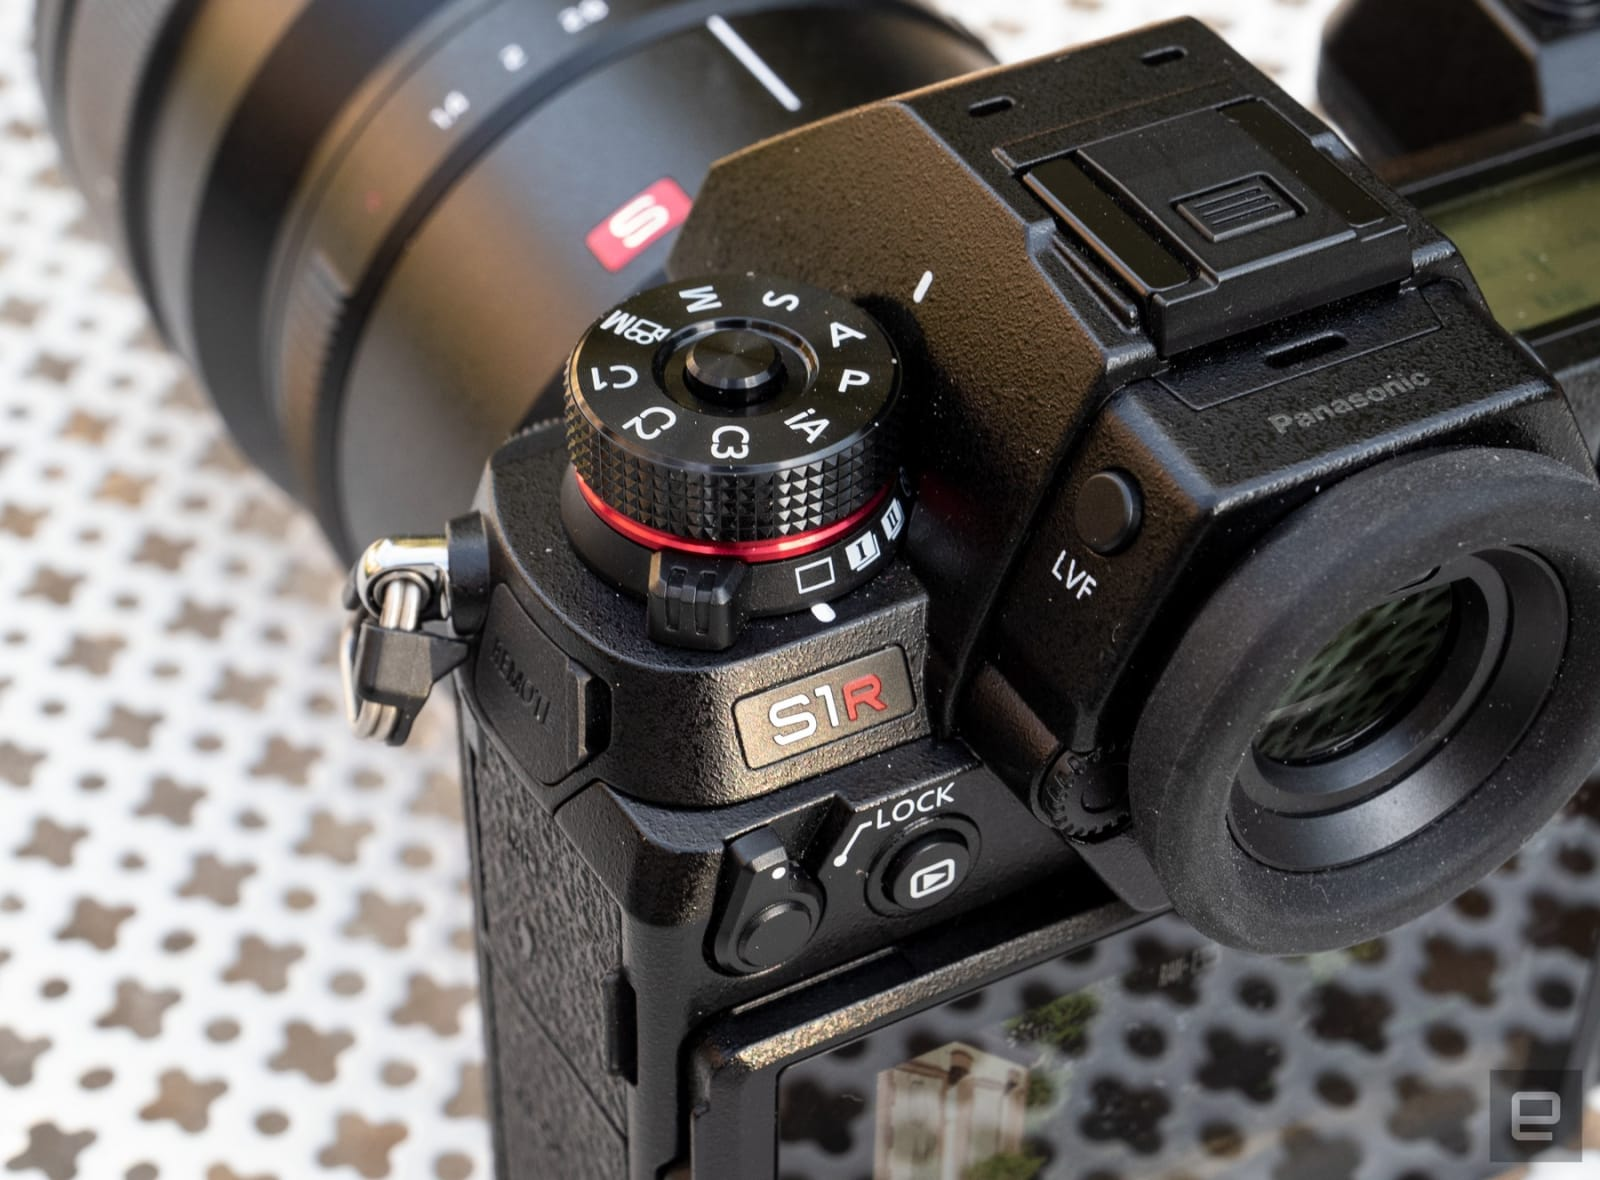 Panasonic S1R full-frame mirrorless camera